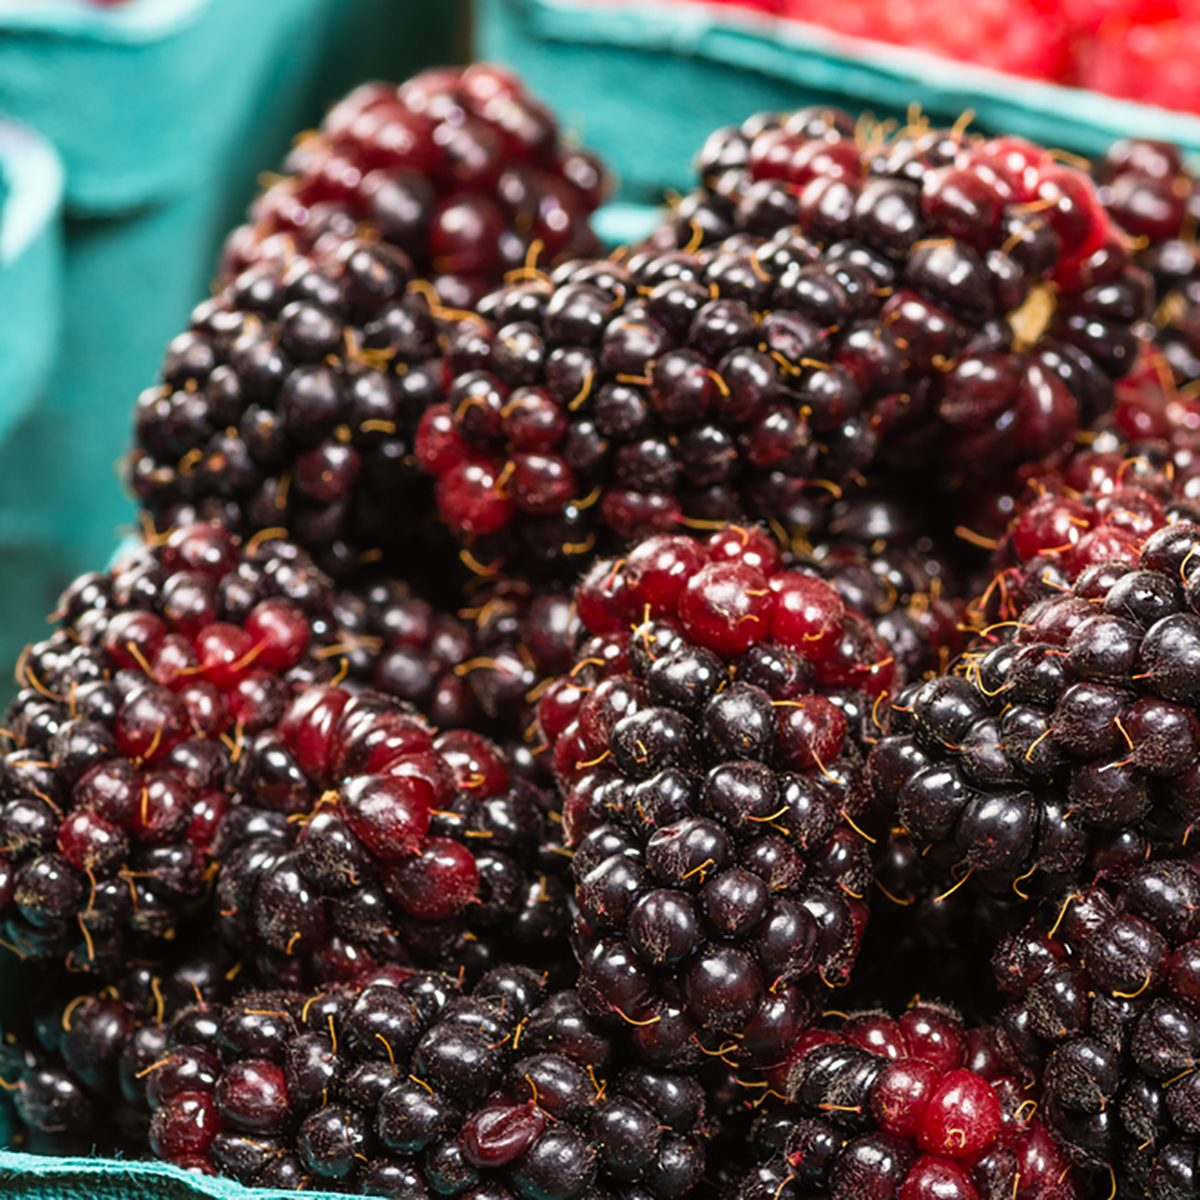 A basket of fresh Marionberries on display at the market